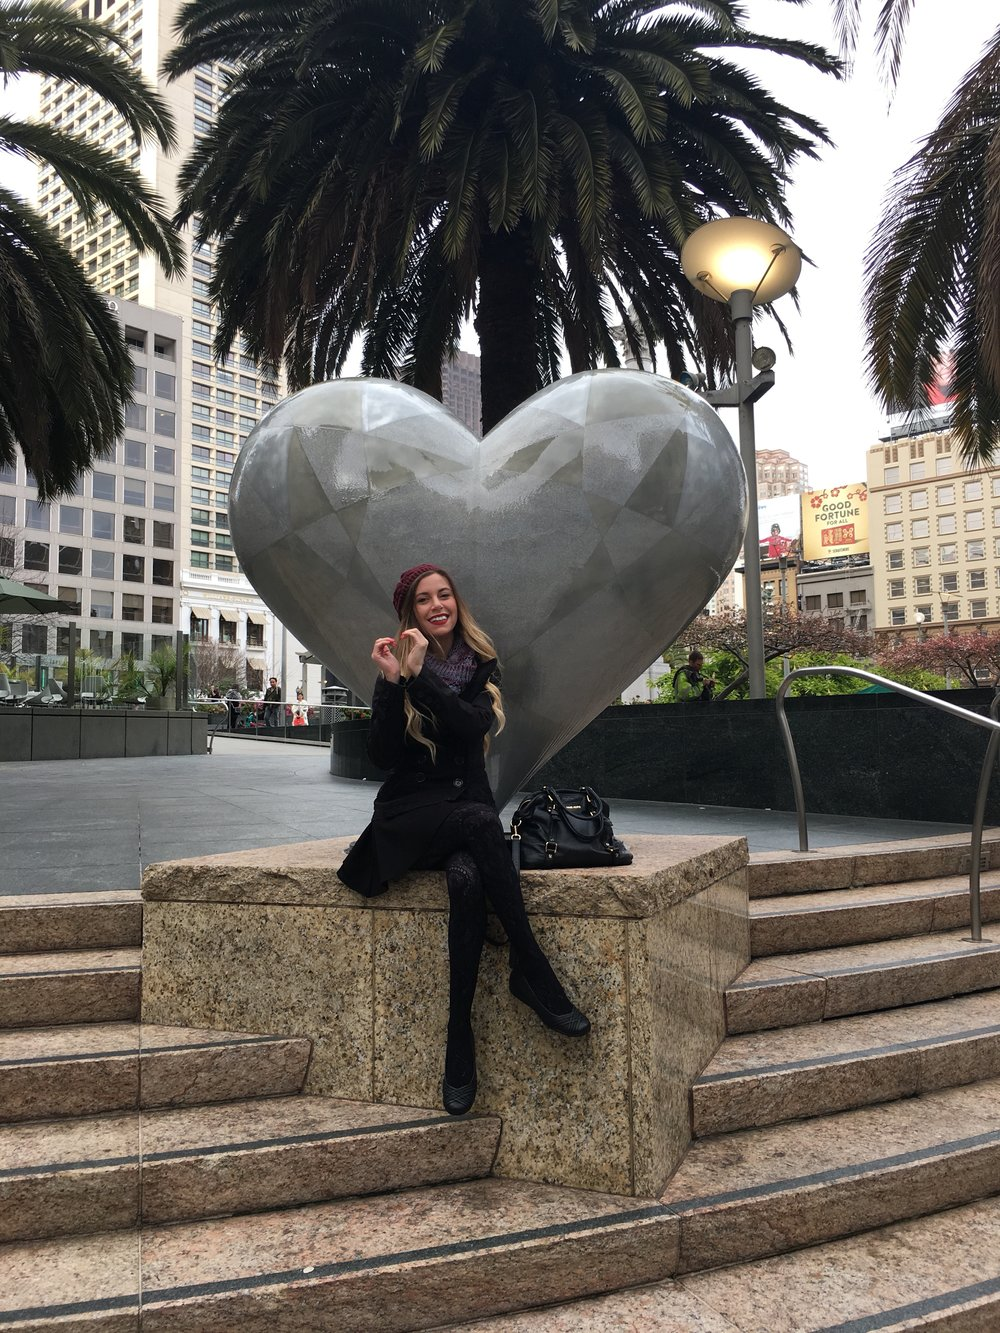 Union Square is the heart and hub of the city. It has luxurious shopping and the finest hotels. Stay and dine here but the best parts of San Francisco are a bit further out.